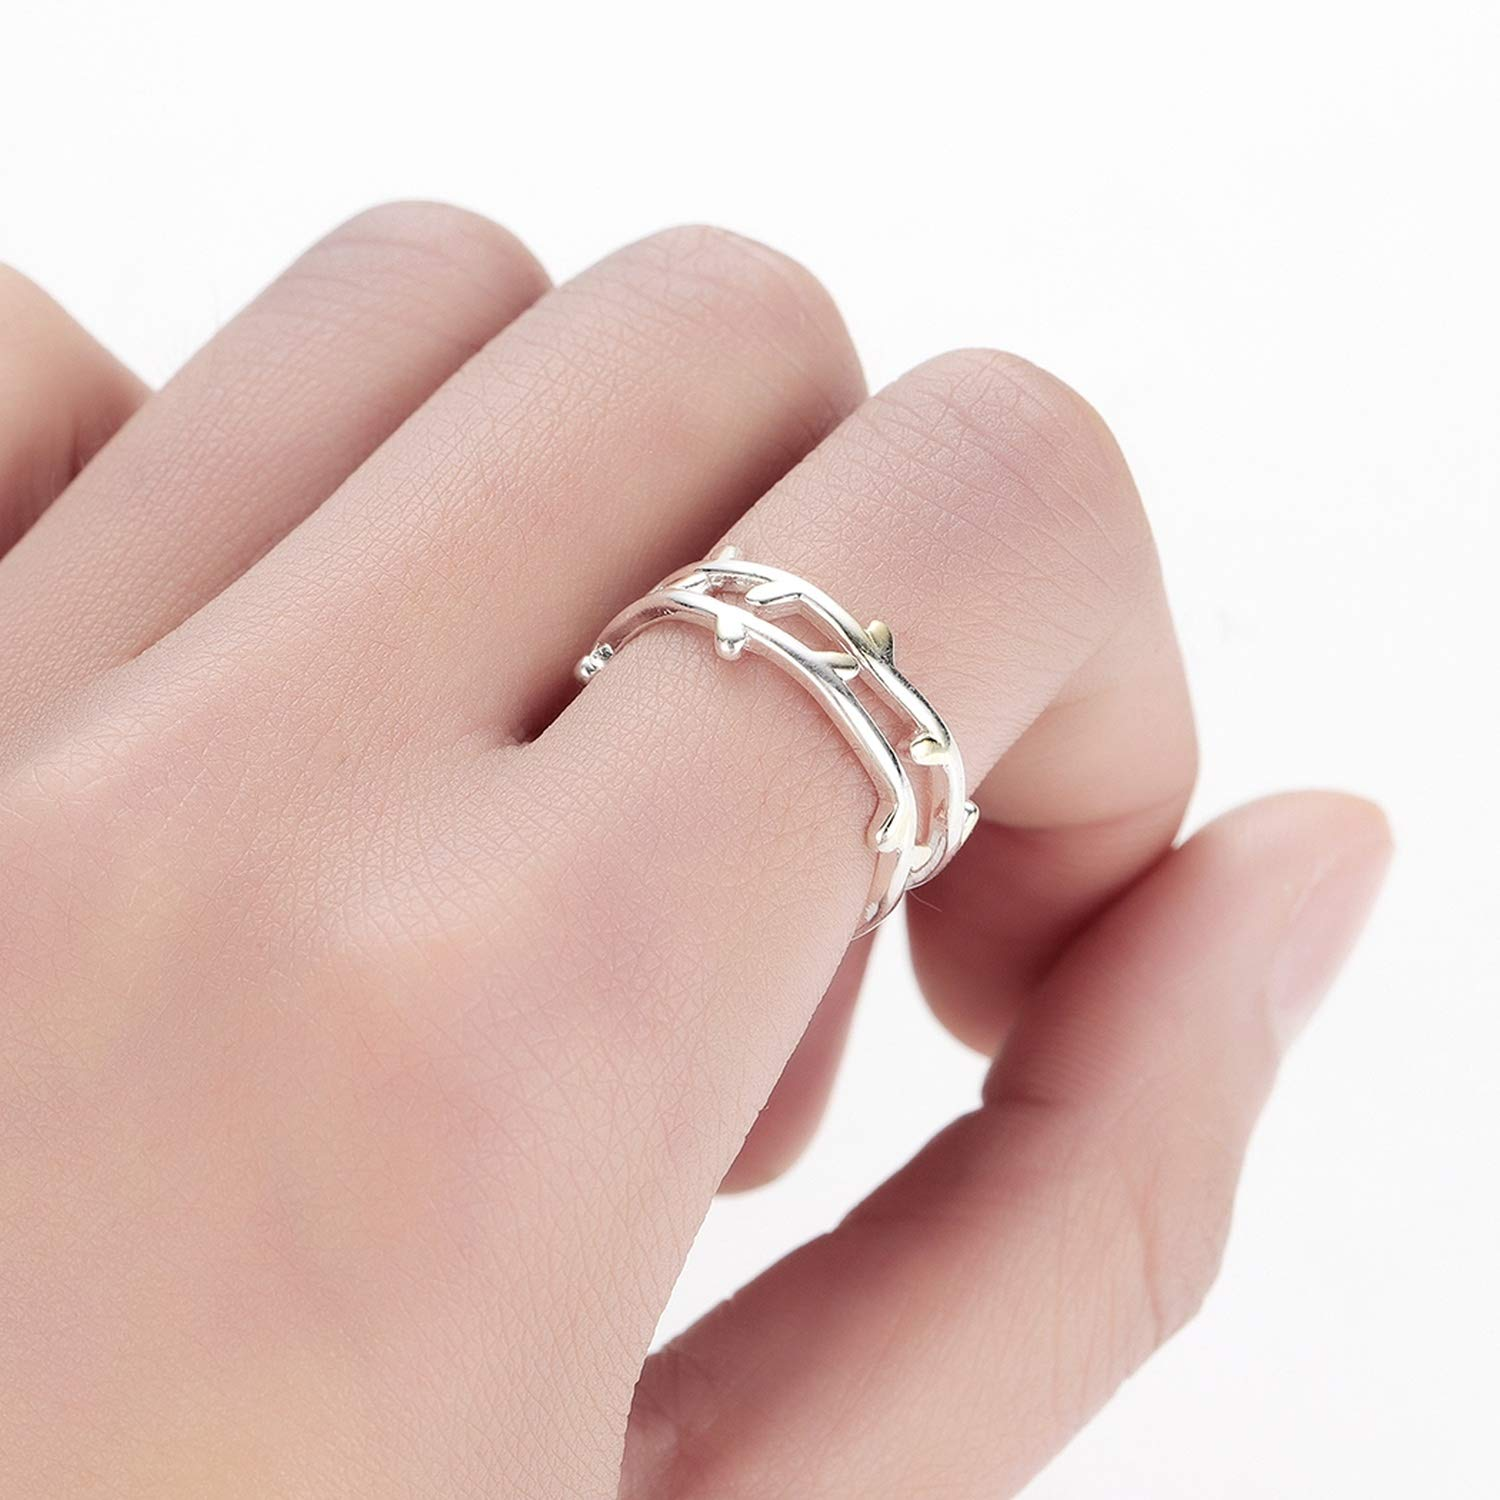 Candy-OU Wind New Double Layer Branch Rings for Women Adjustable Finger Charm Leaf Ring Wedding Rings 2019 Bagues